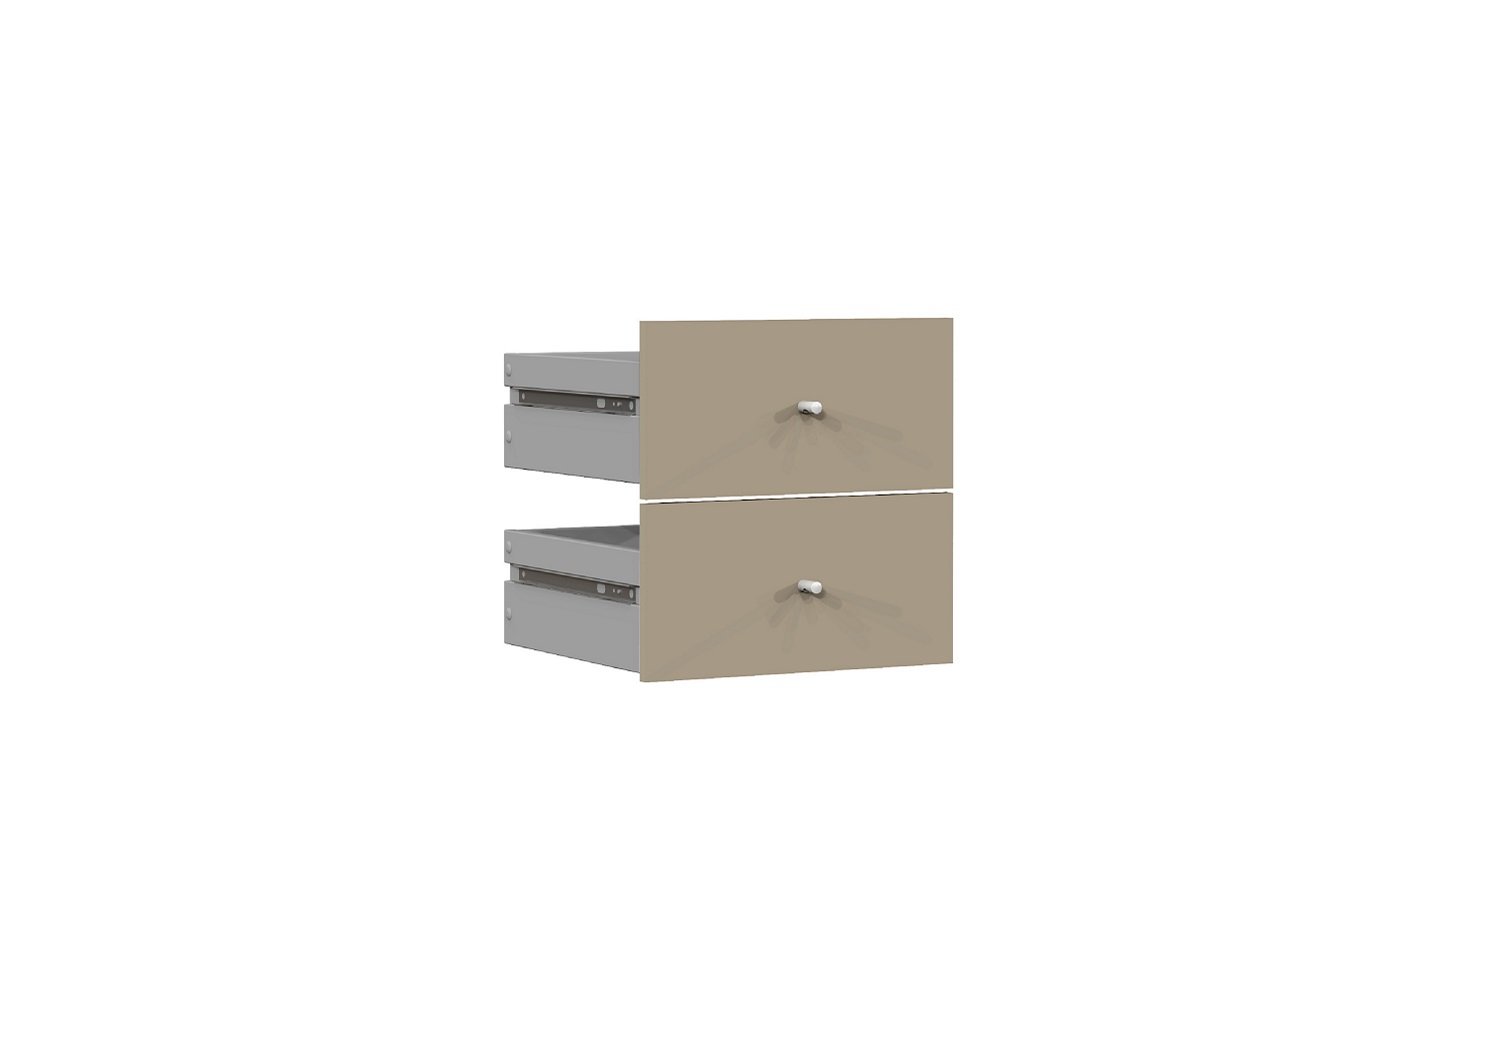 Bilrich Storage Furniture - Multi Kaz Accessory Set of 2 Drawers Taupe